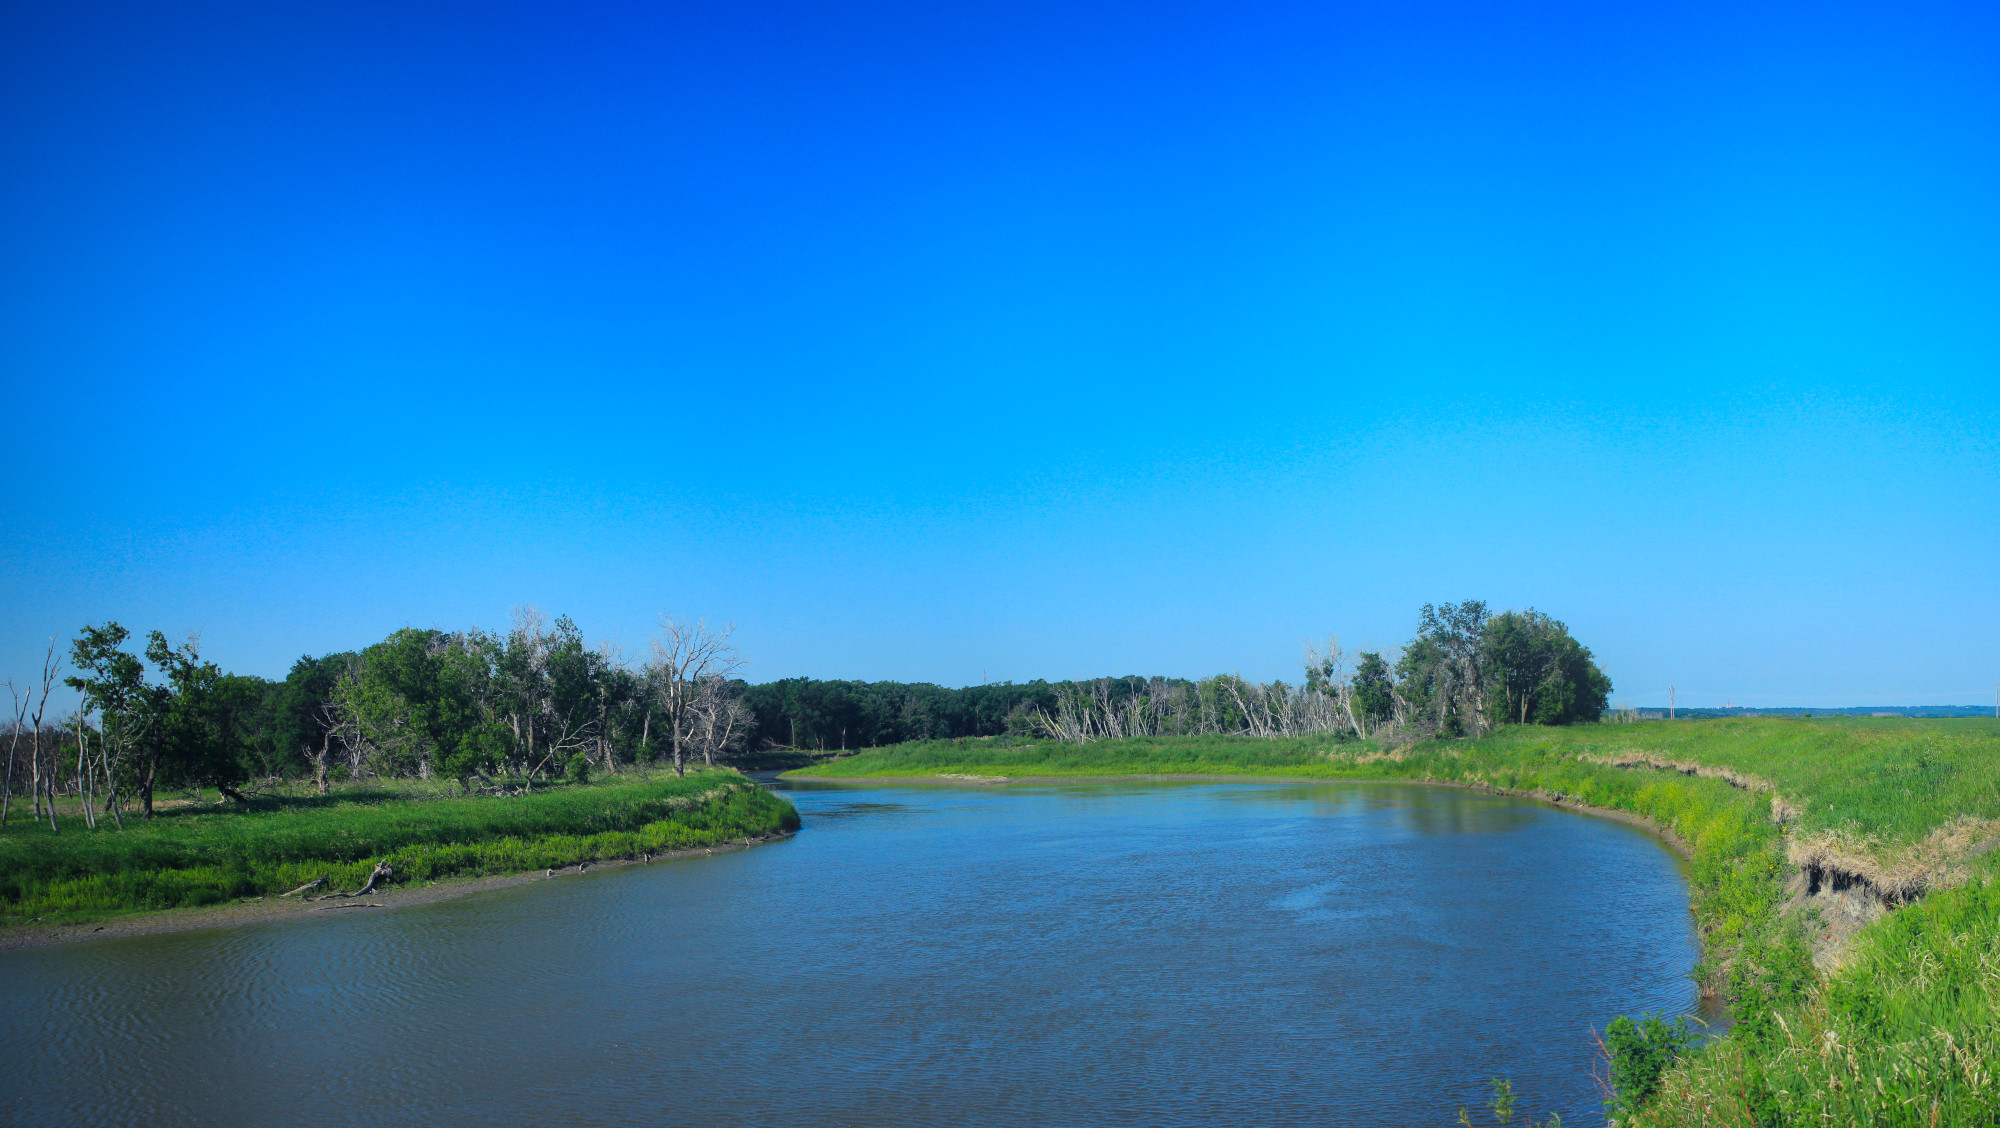 Panorama of the Assiniboine River